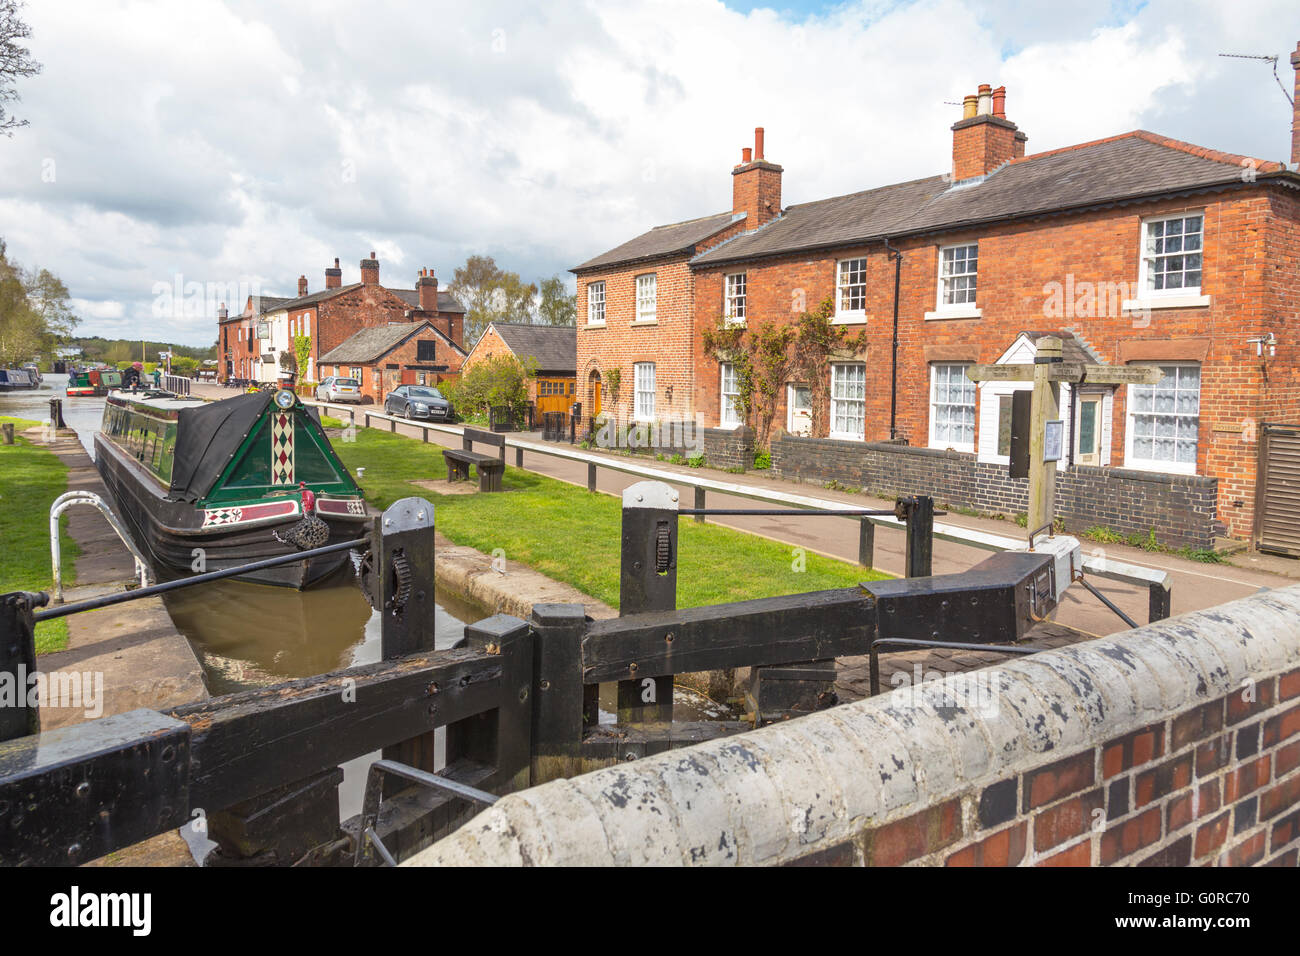 Narrowboats at Fradley Junction lock on the Trent and Mersey Canal, Staffordshire, England, UK - Stock Image